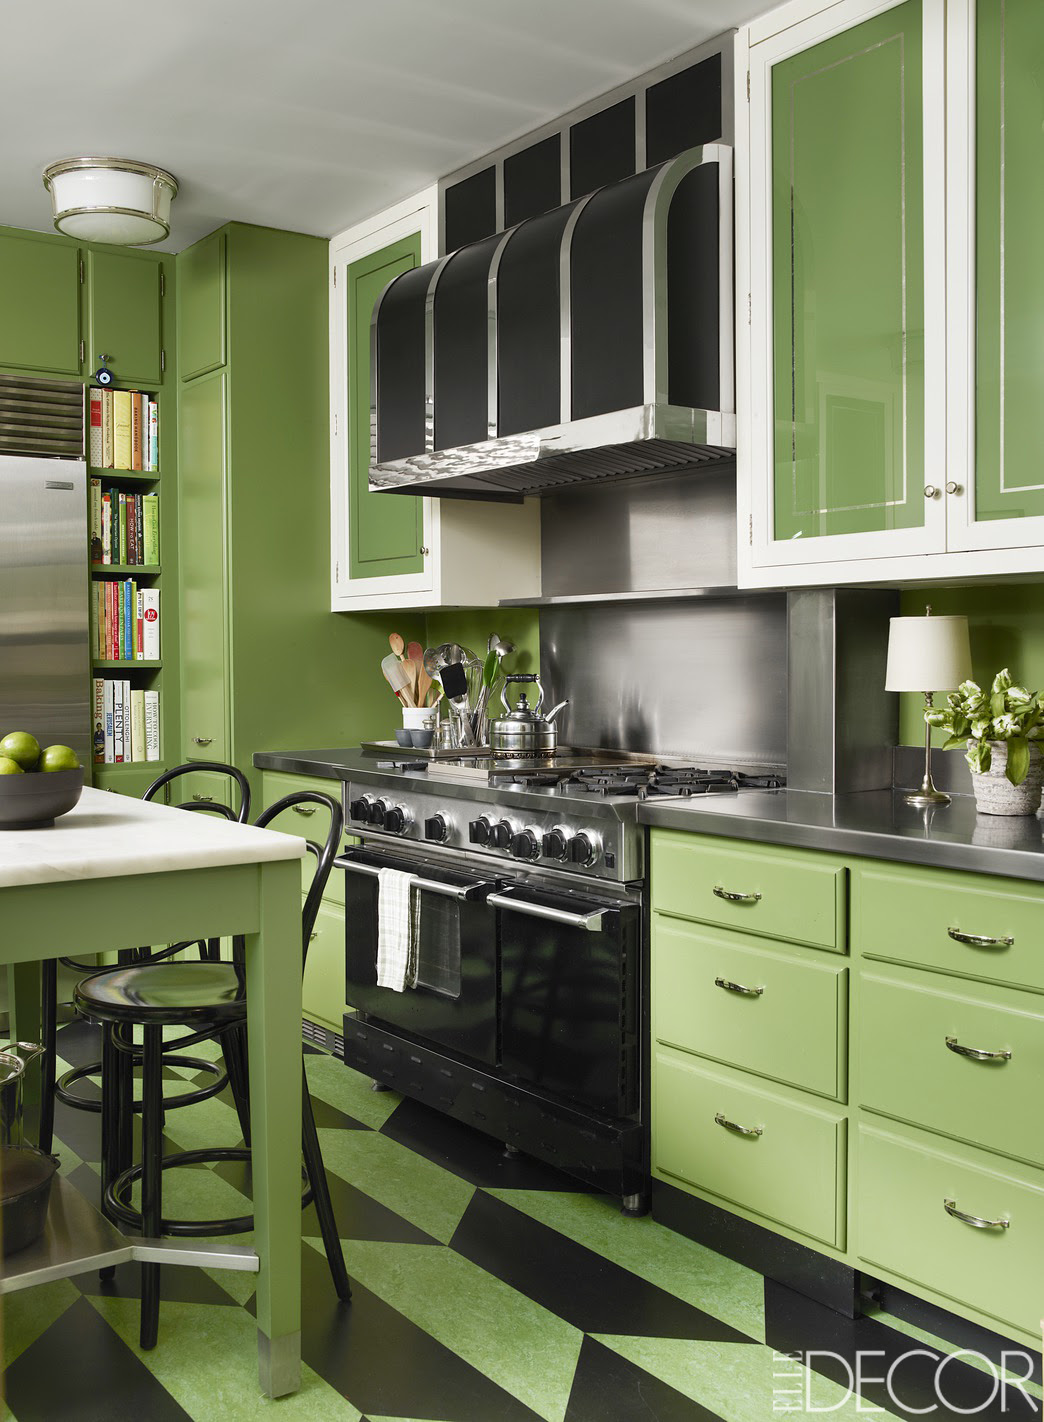 10 Green Kitchen Design Ideas - Paint Colors for Green ...